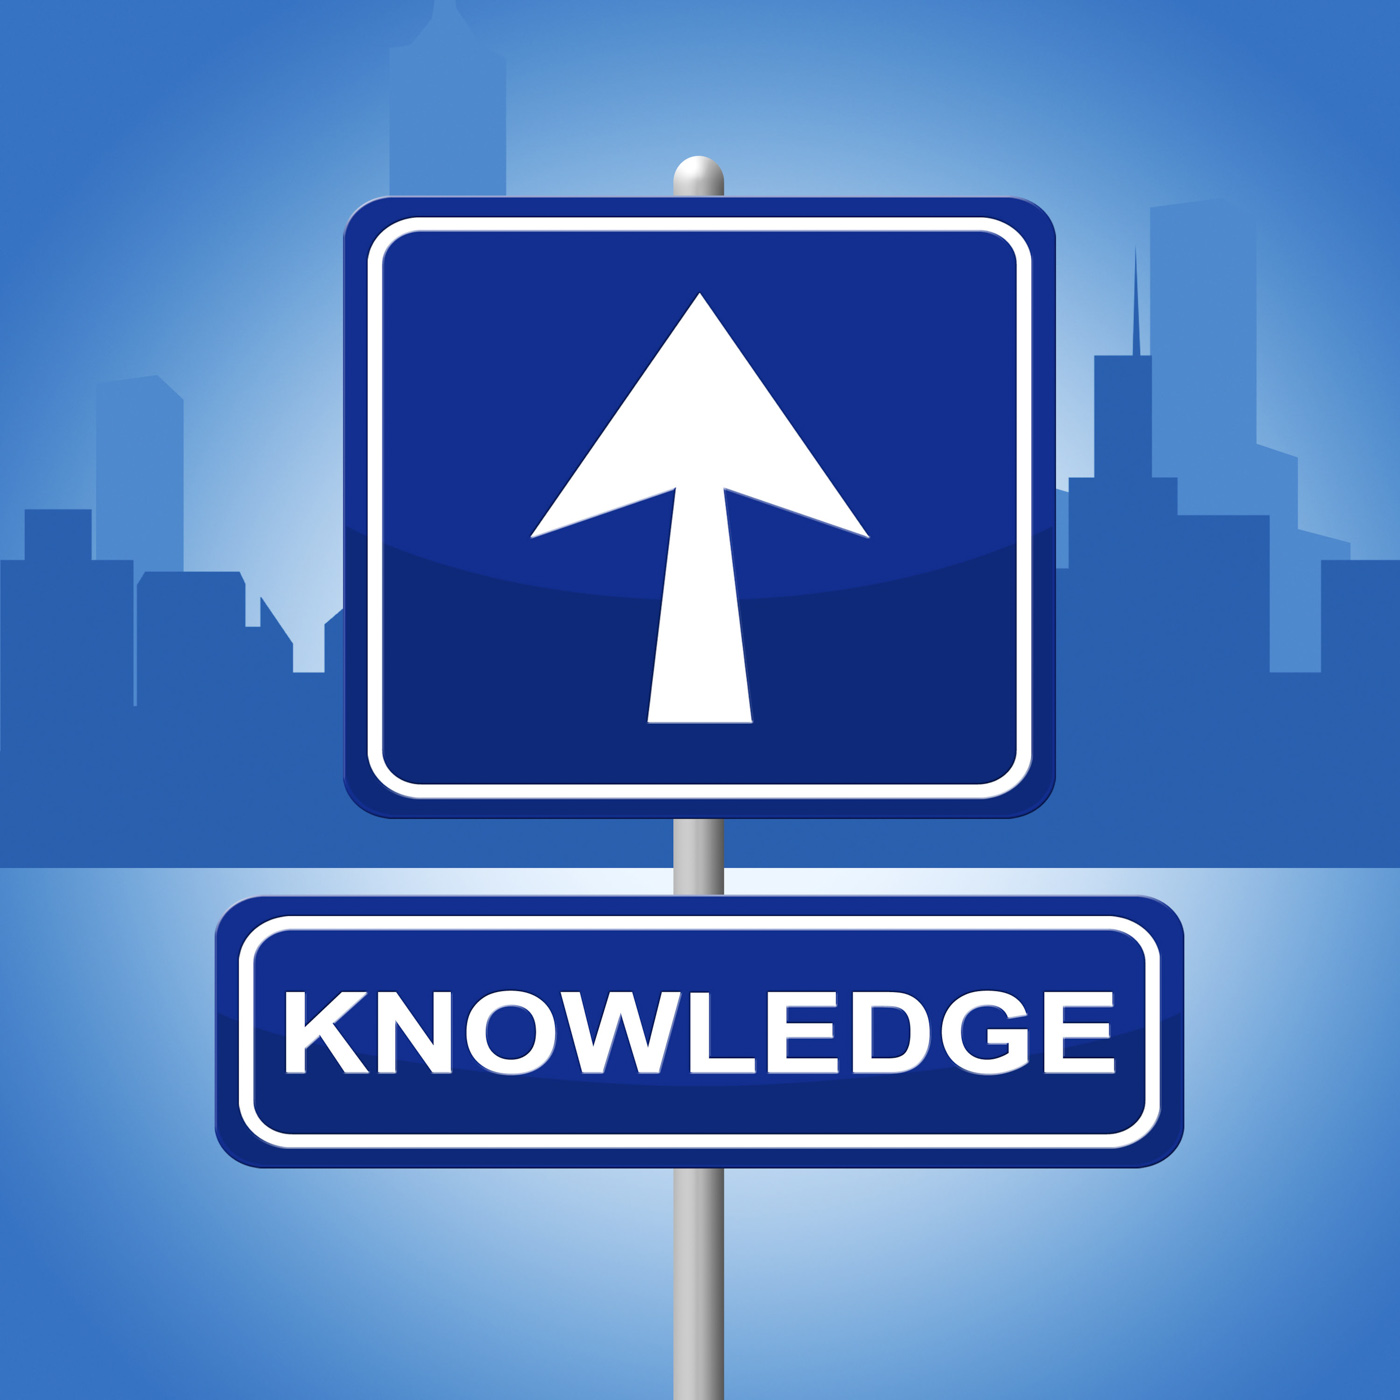 Knowledge sign shows arrows signboard and faq photo